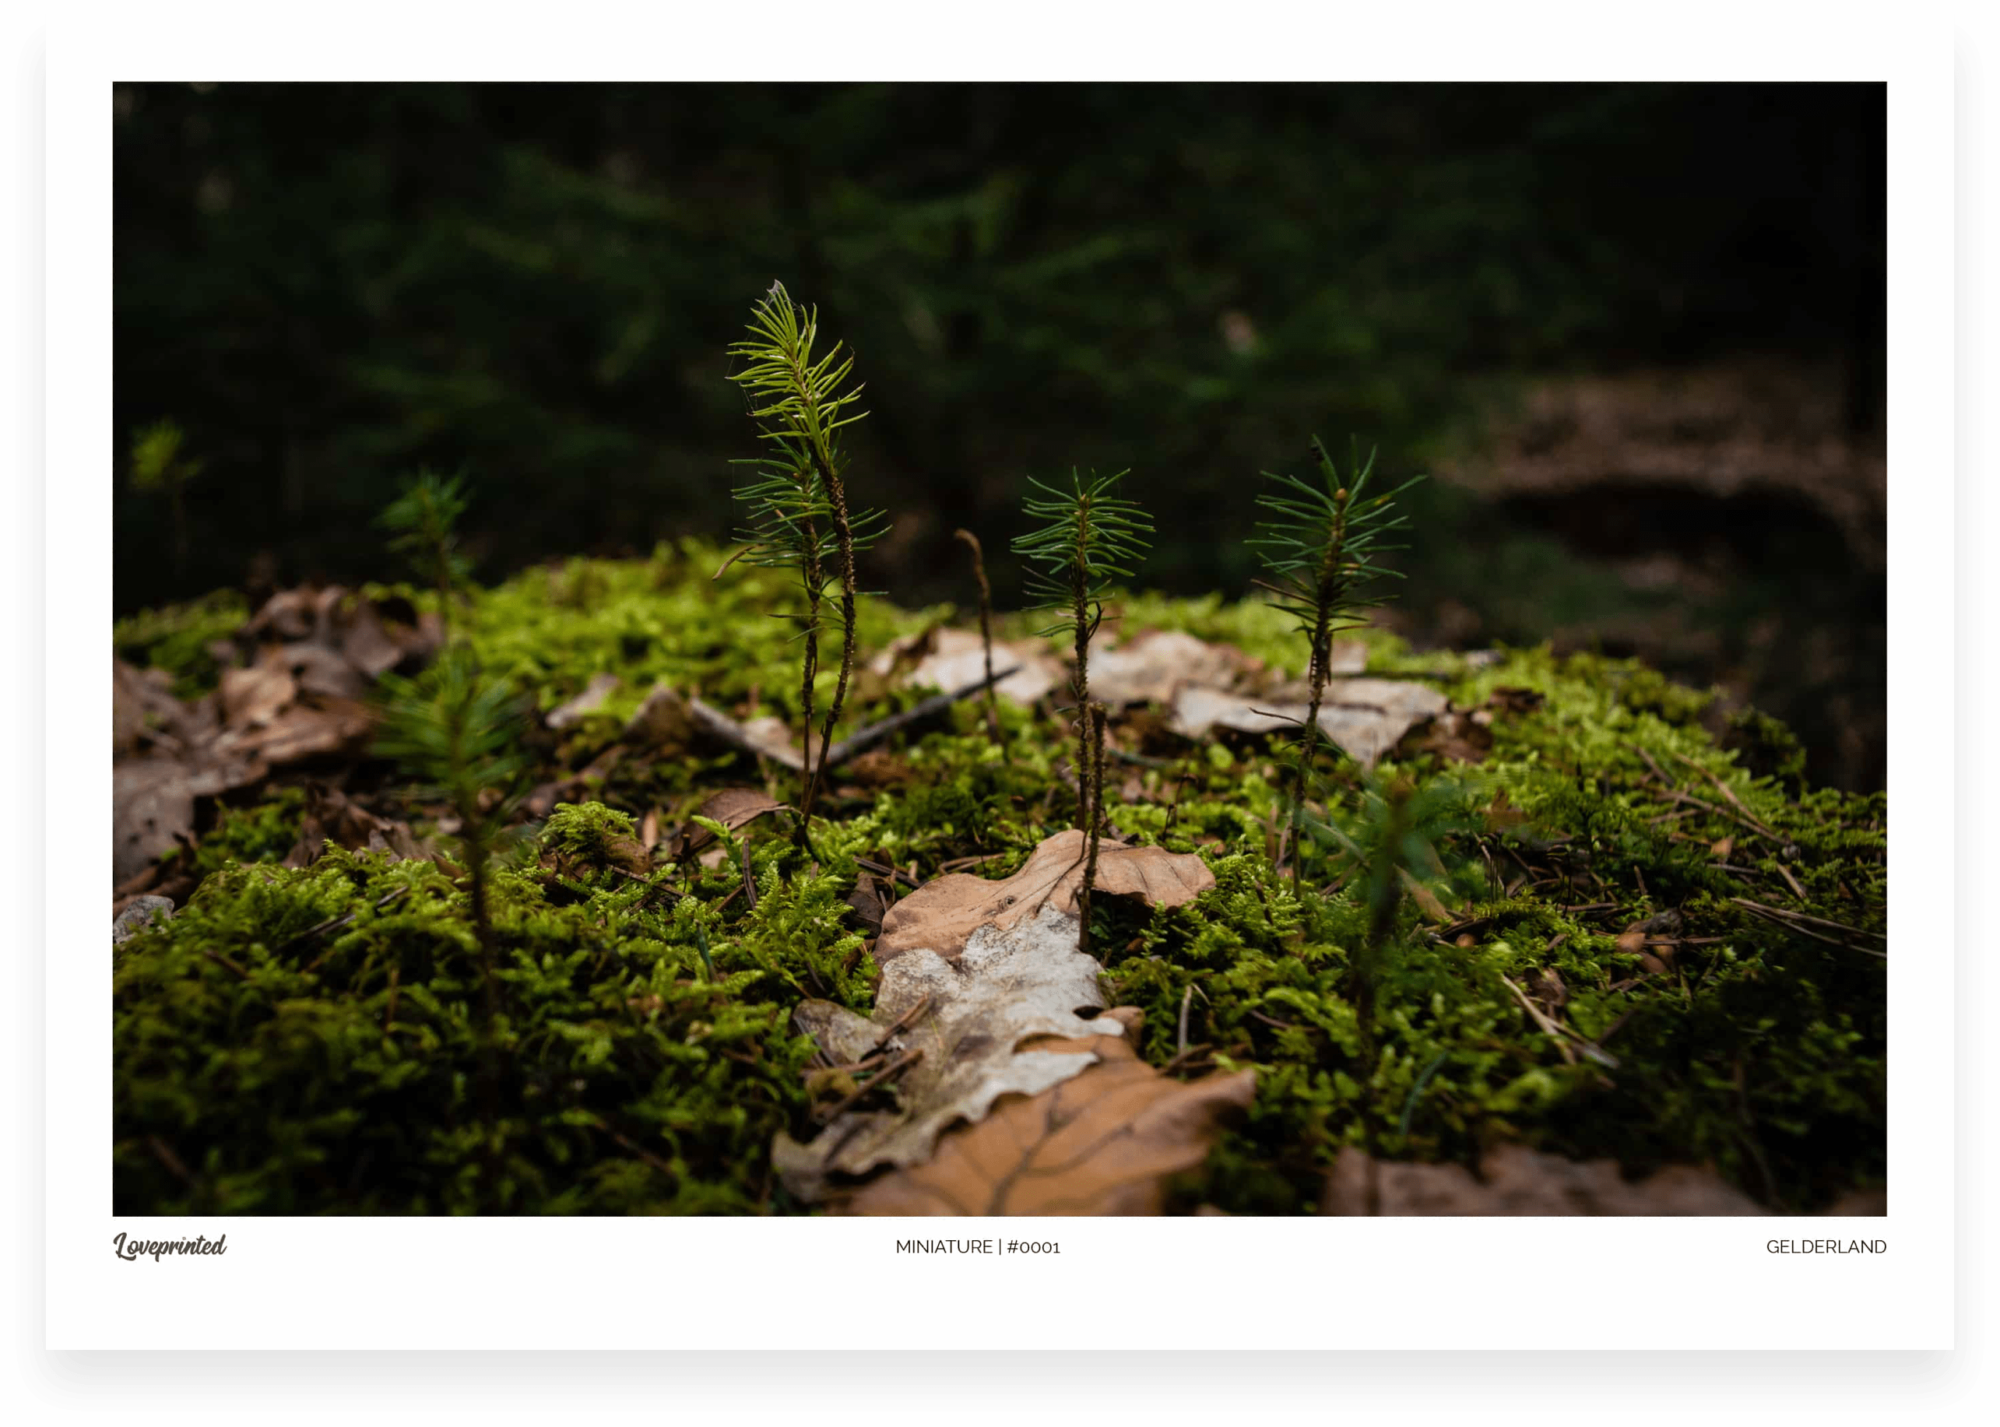 Miniature | A closeup image of a Dutch Forest made by Loveprinted